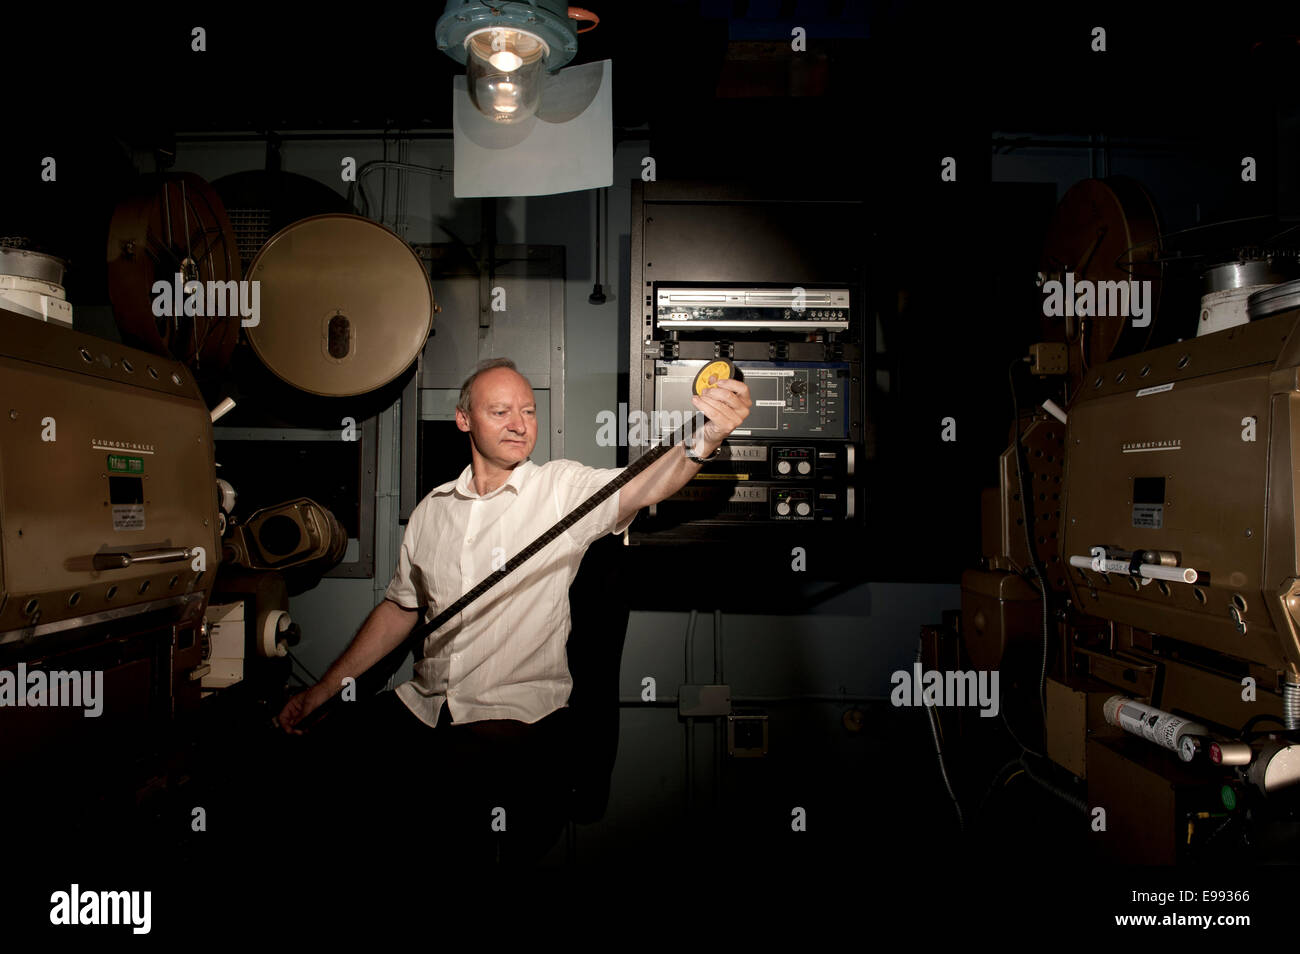 portrait of male member of staff at the BFI archive in the old cinema projection suite, looking at rolls of film - Stock Image